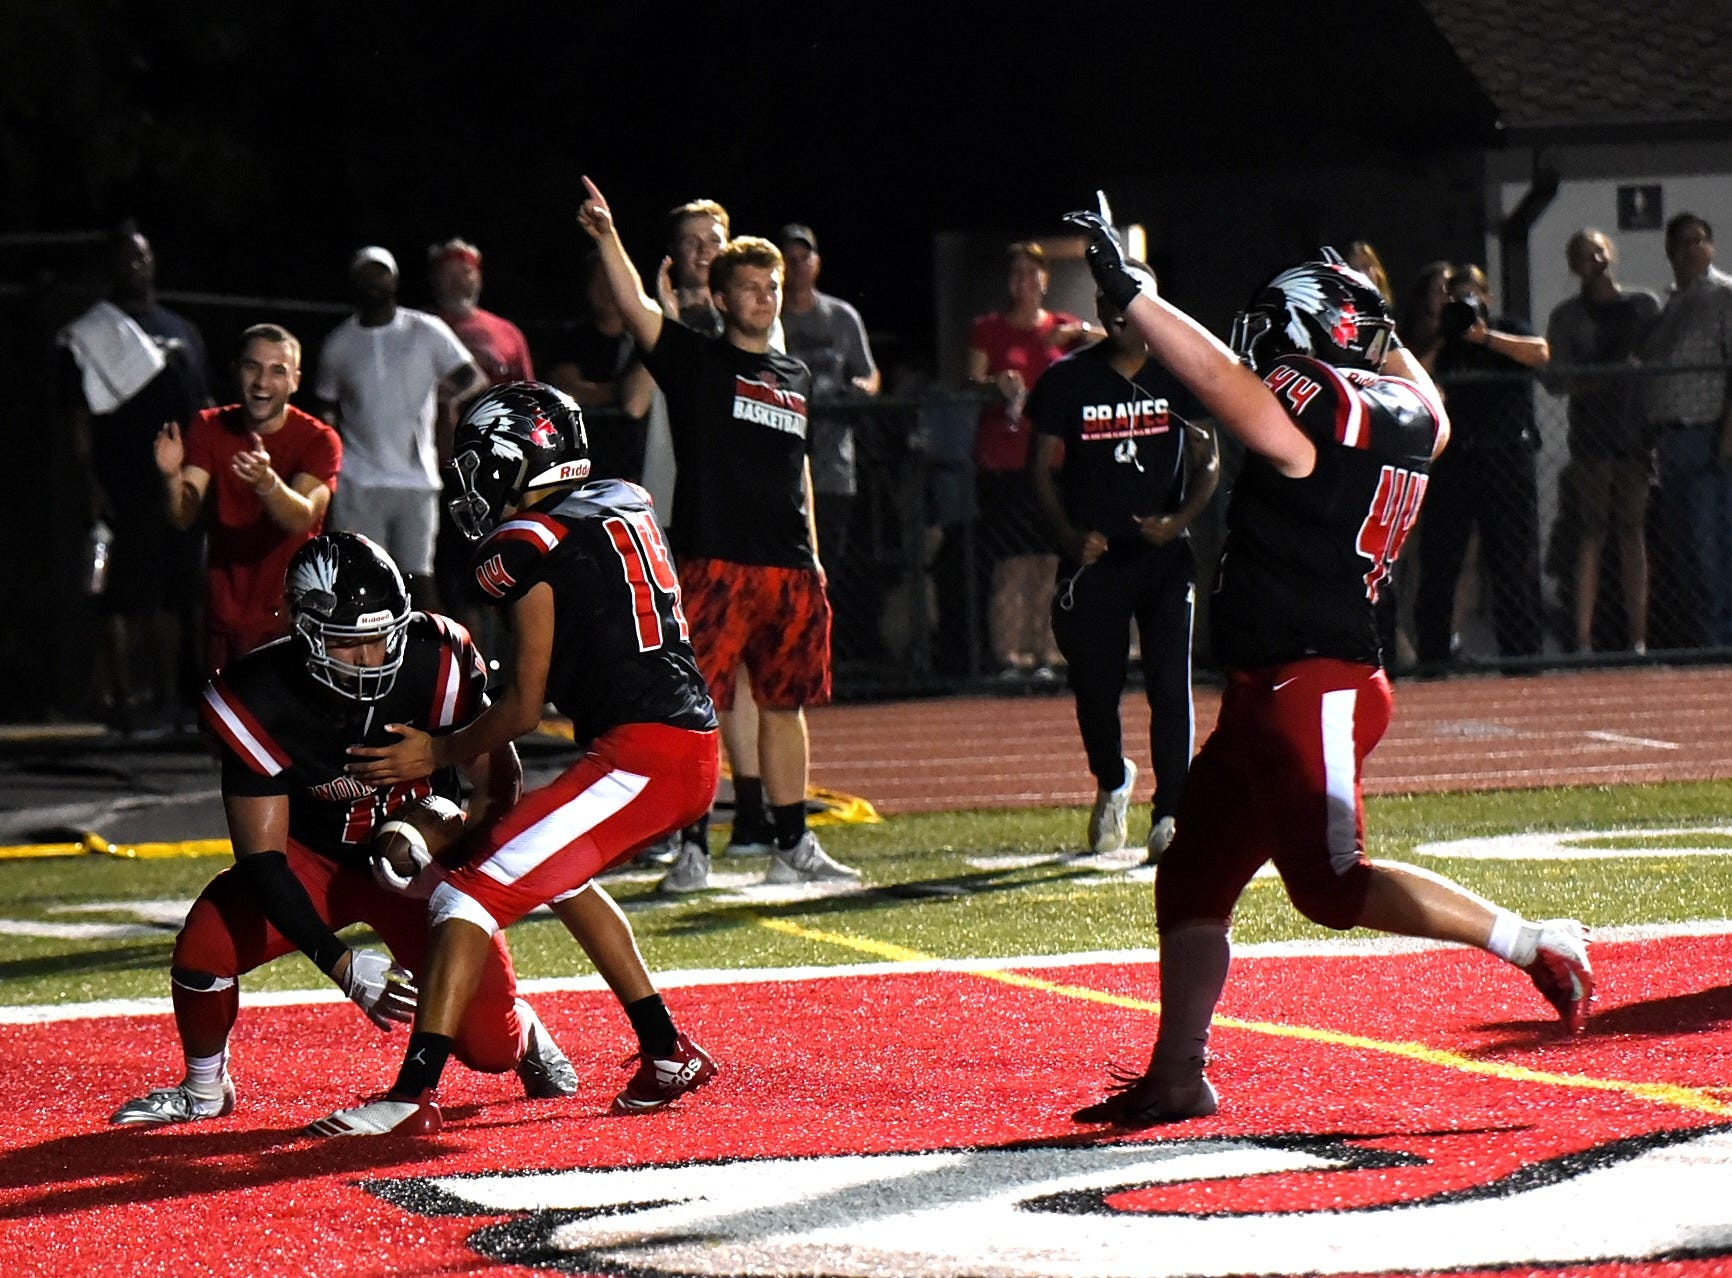 It's a Braves touchdown celebration as Indian Hill tops Madeira 30-7, Sept. 14, 2018.